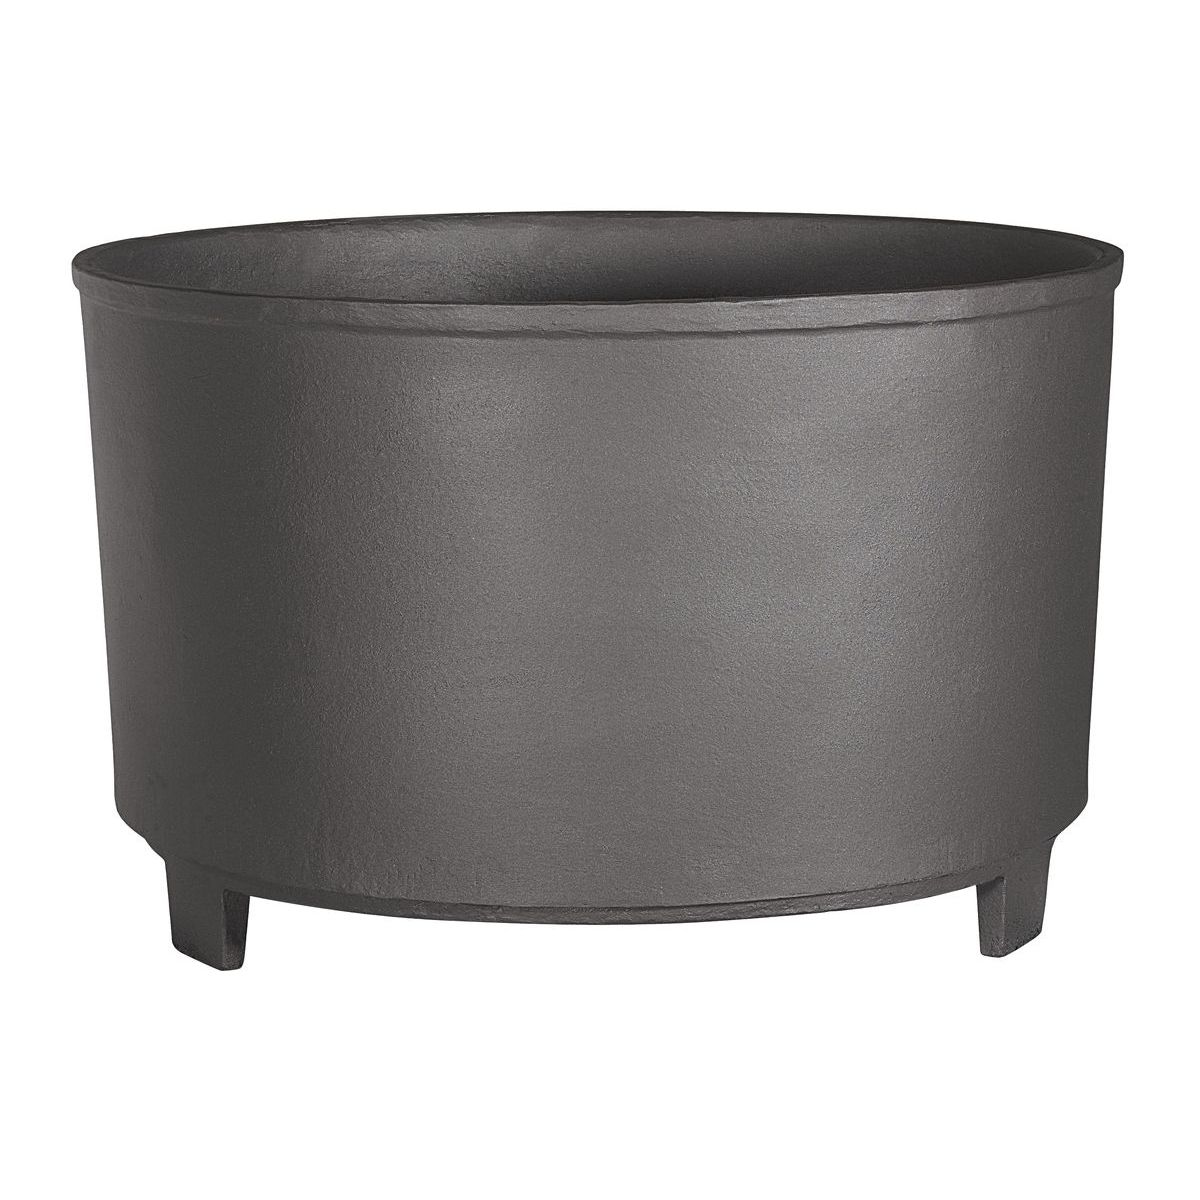 Big circular or sferic flower box in iron claudia J-33